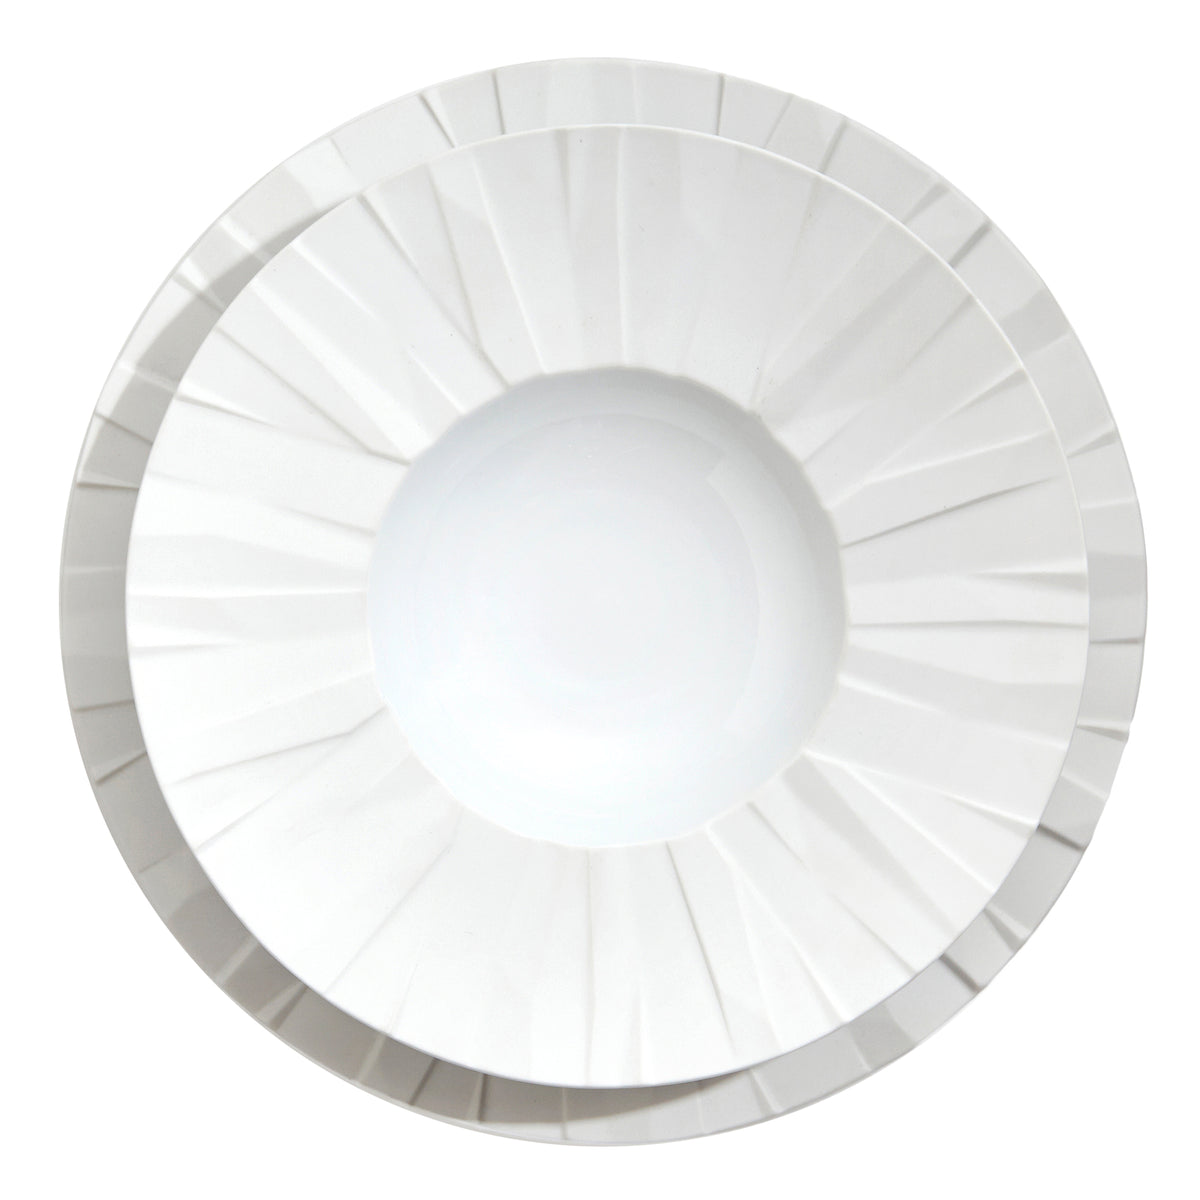 Matrix White Porcelain Dinner Plate